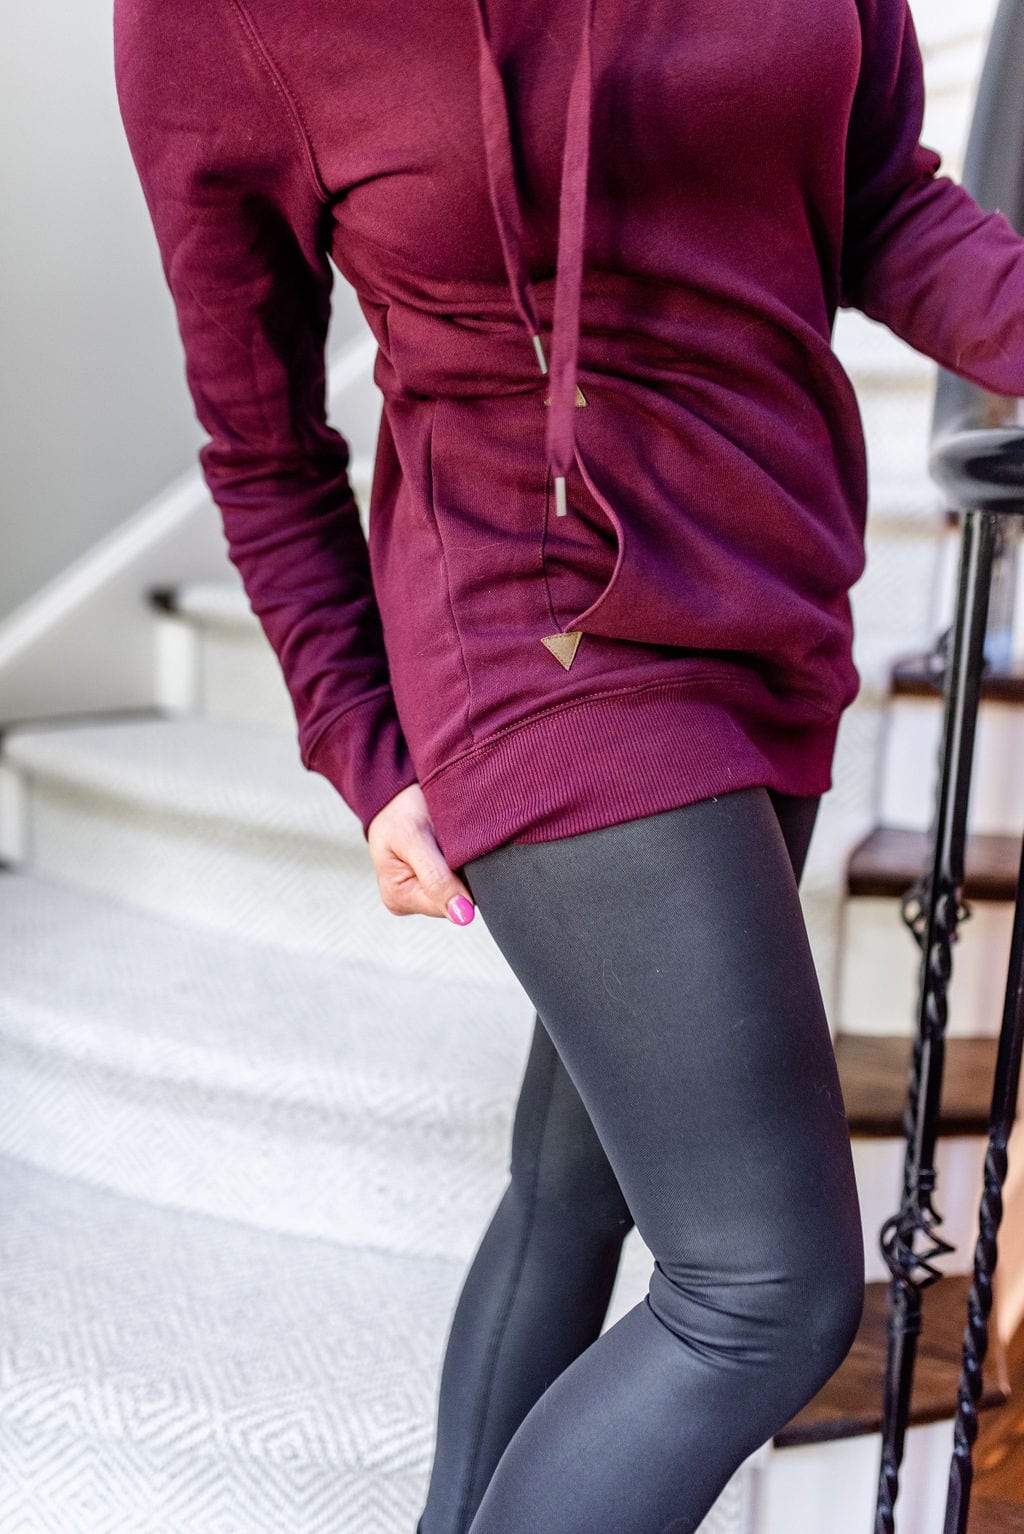 Long sweatshirt hoodie in dark maroon color with shiny yoga pants.